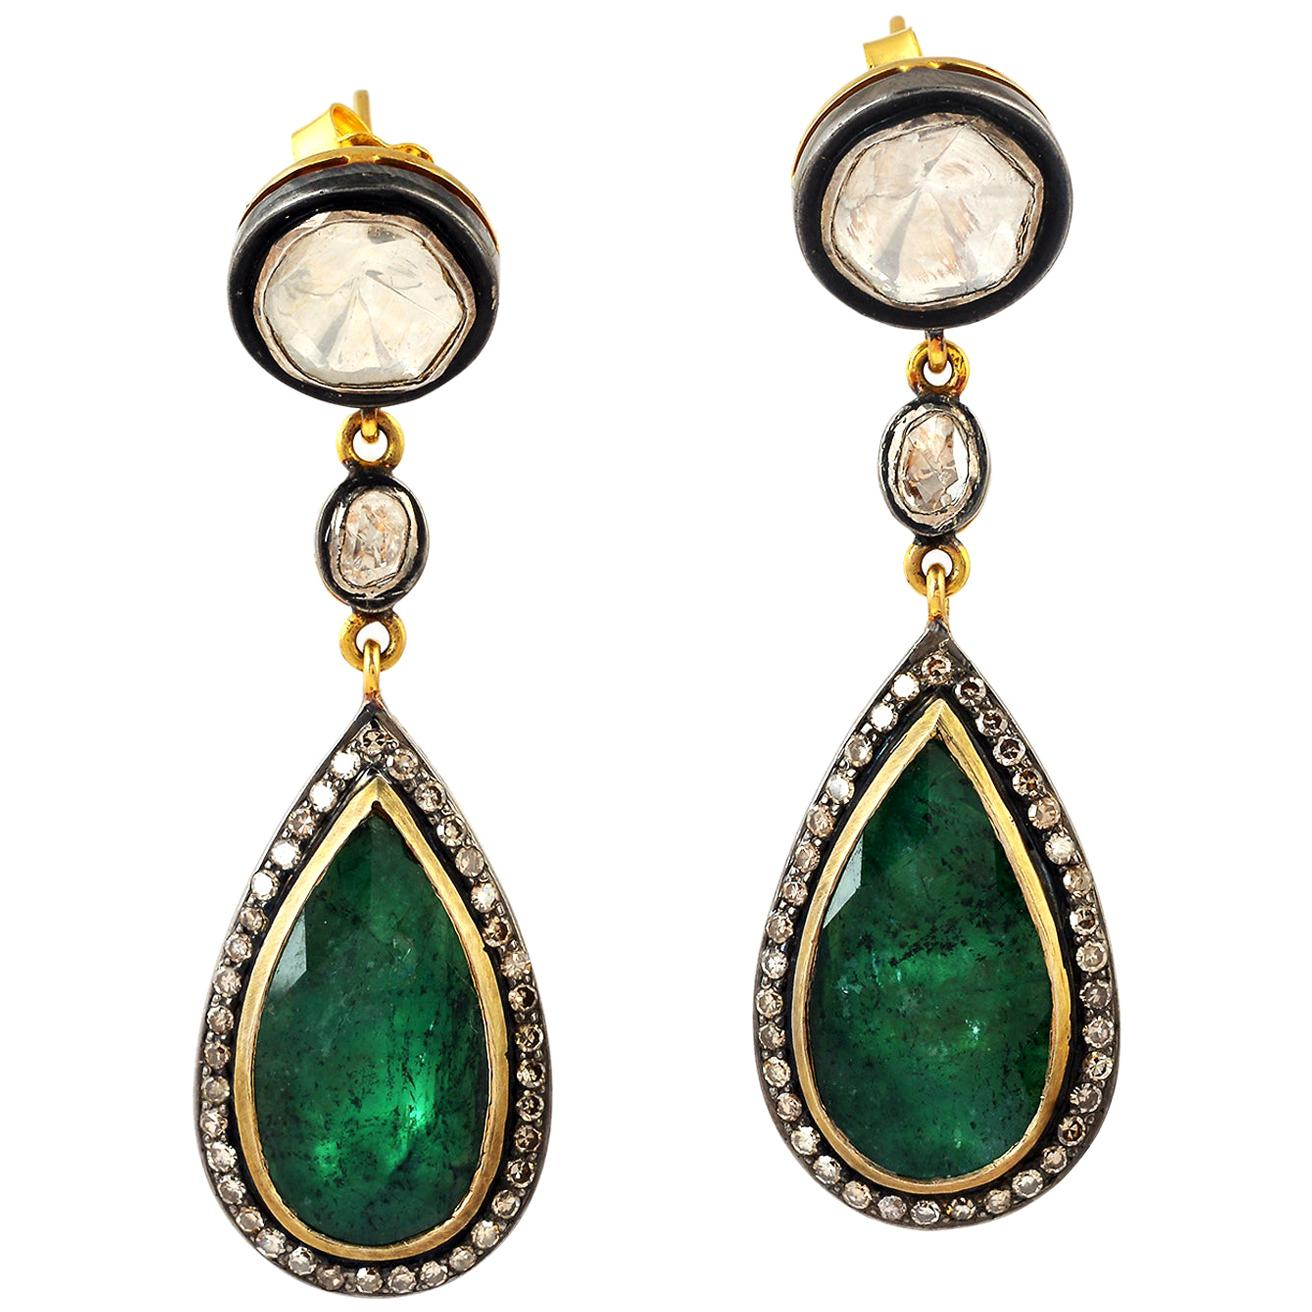 Dangling Diamond and Emerald Earring in Silver and Gold